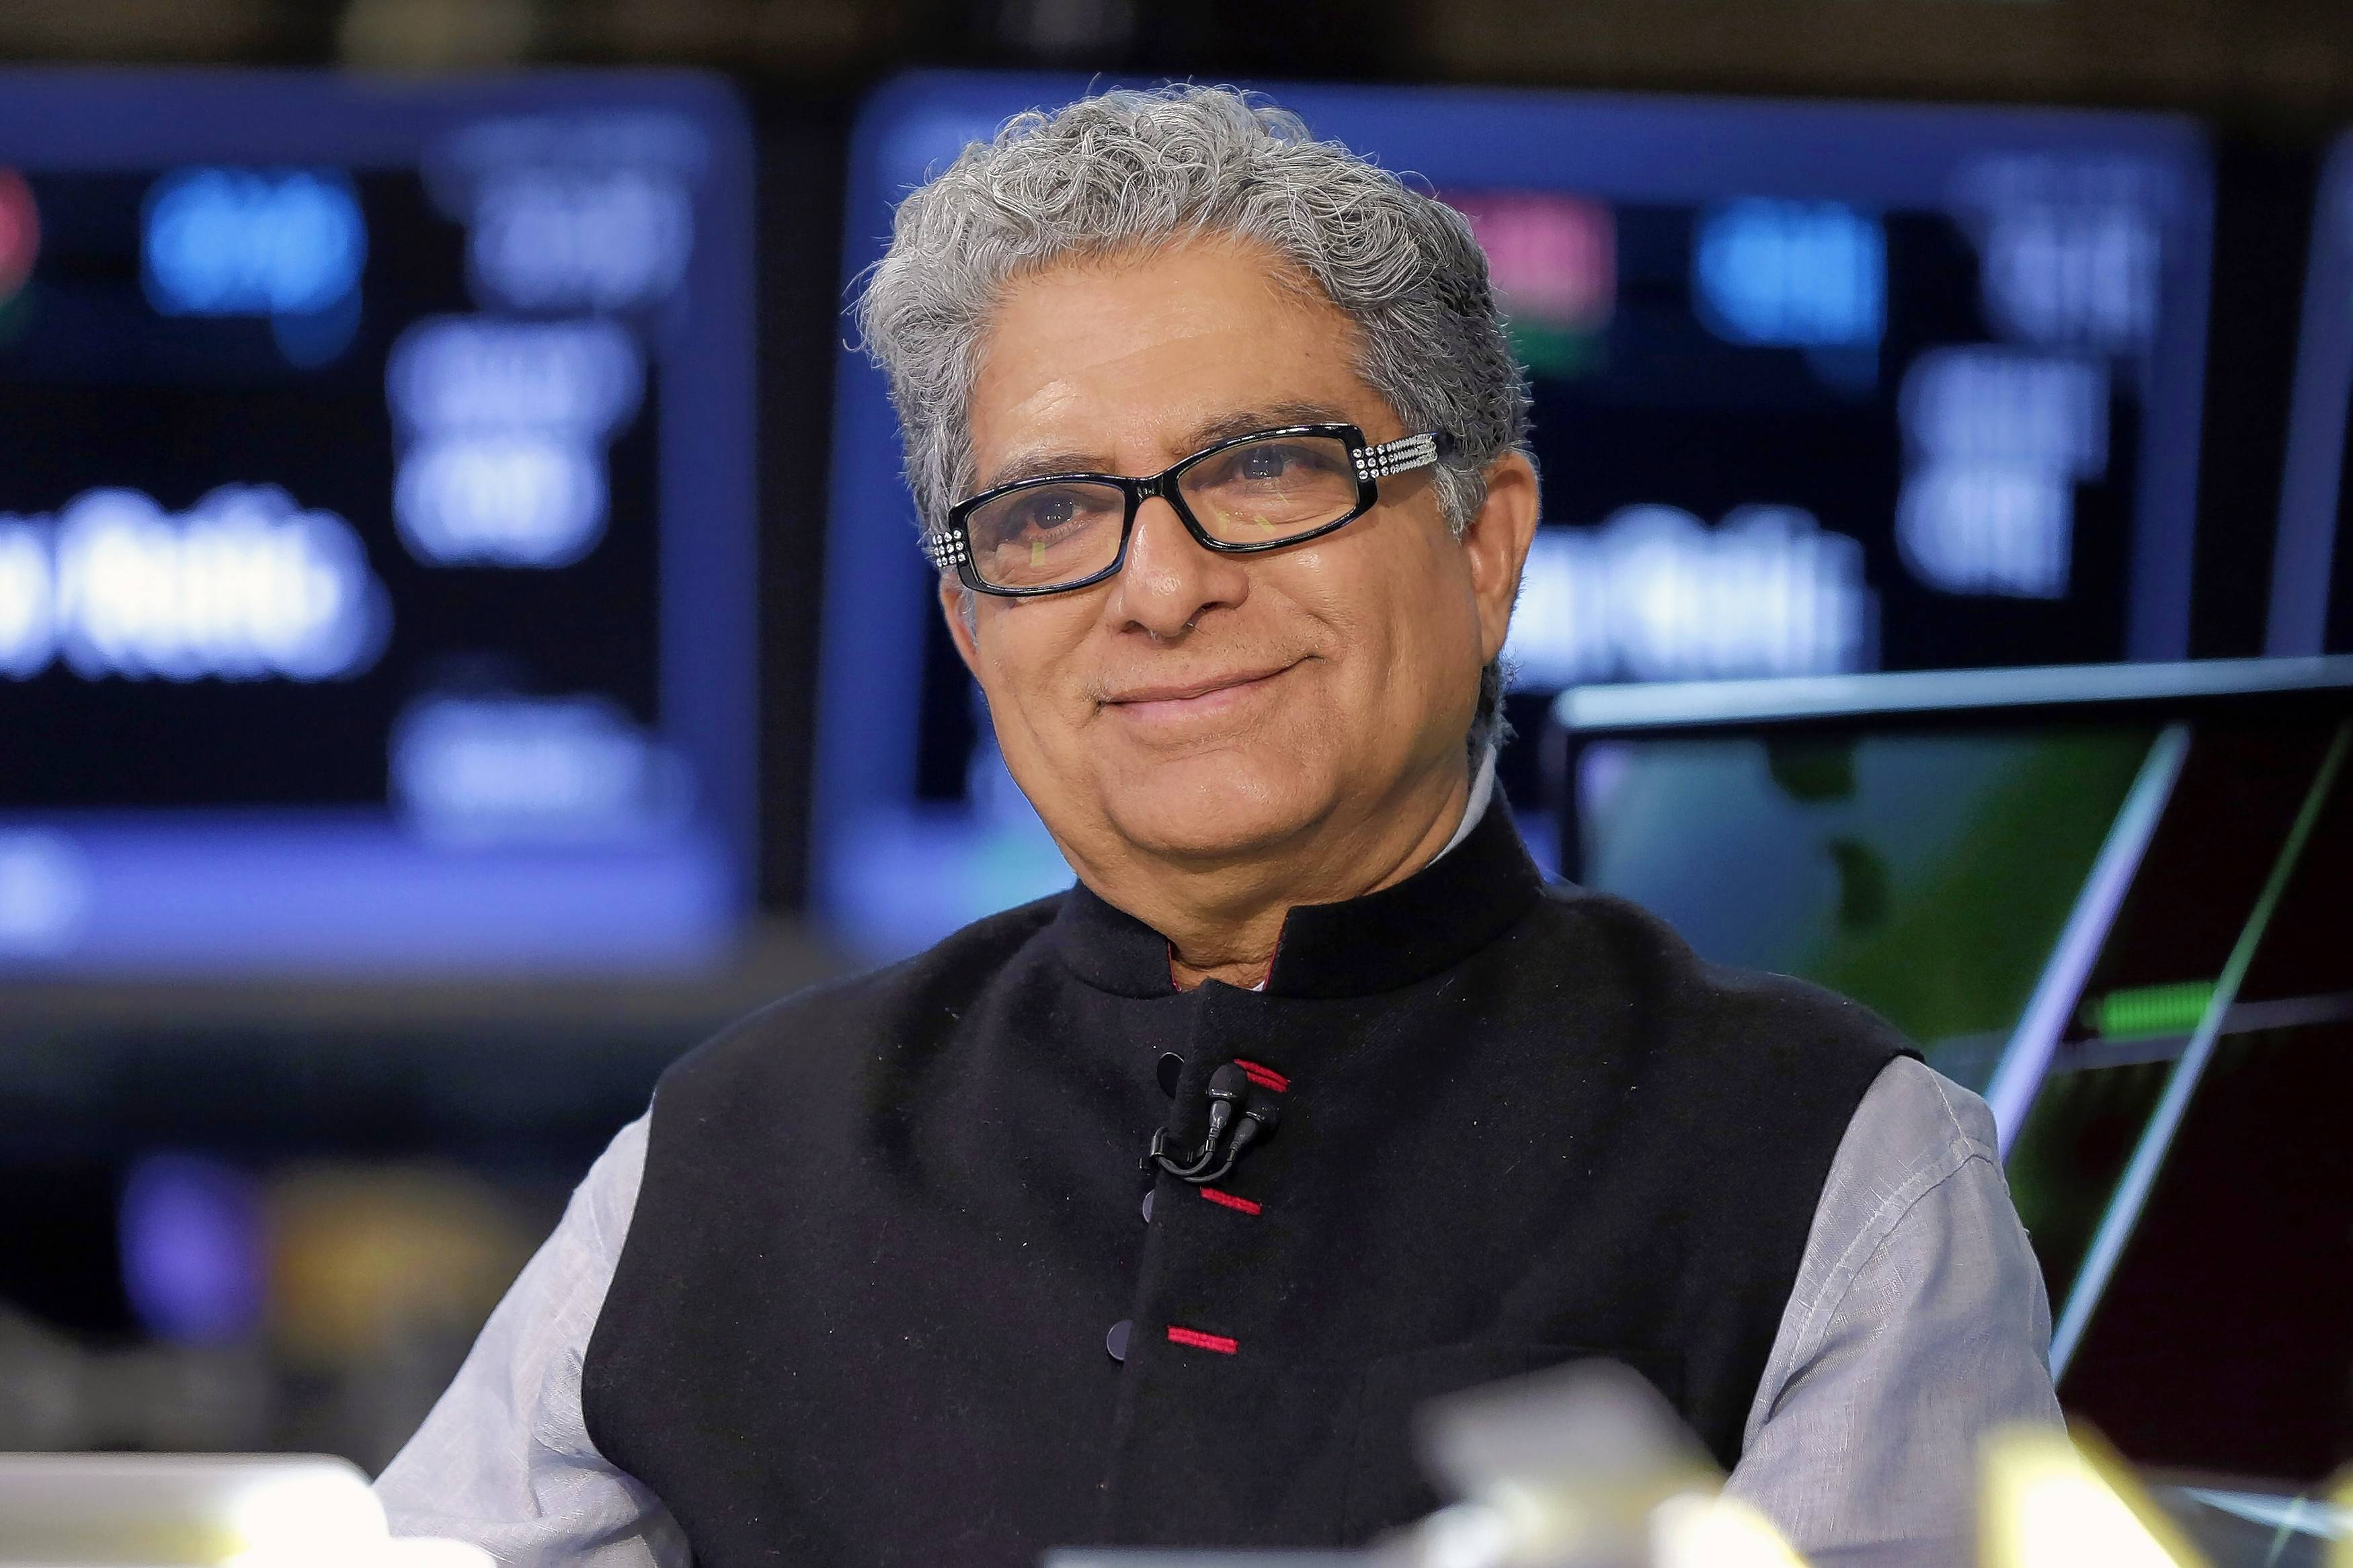 Deepak Chopra, a physician and celebrity wellness adviser, is known for promoting the benefits of meditation -- clearing the distractions that clutter the mind. Now he's become a gadget guy, embracing the industry many think is making us less healthy and less happy.